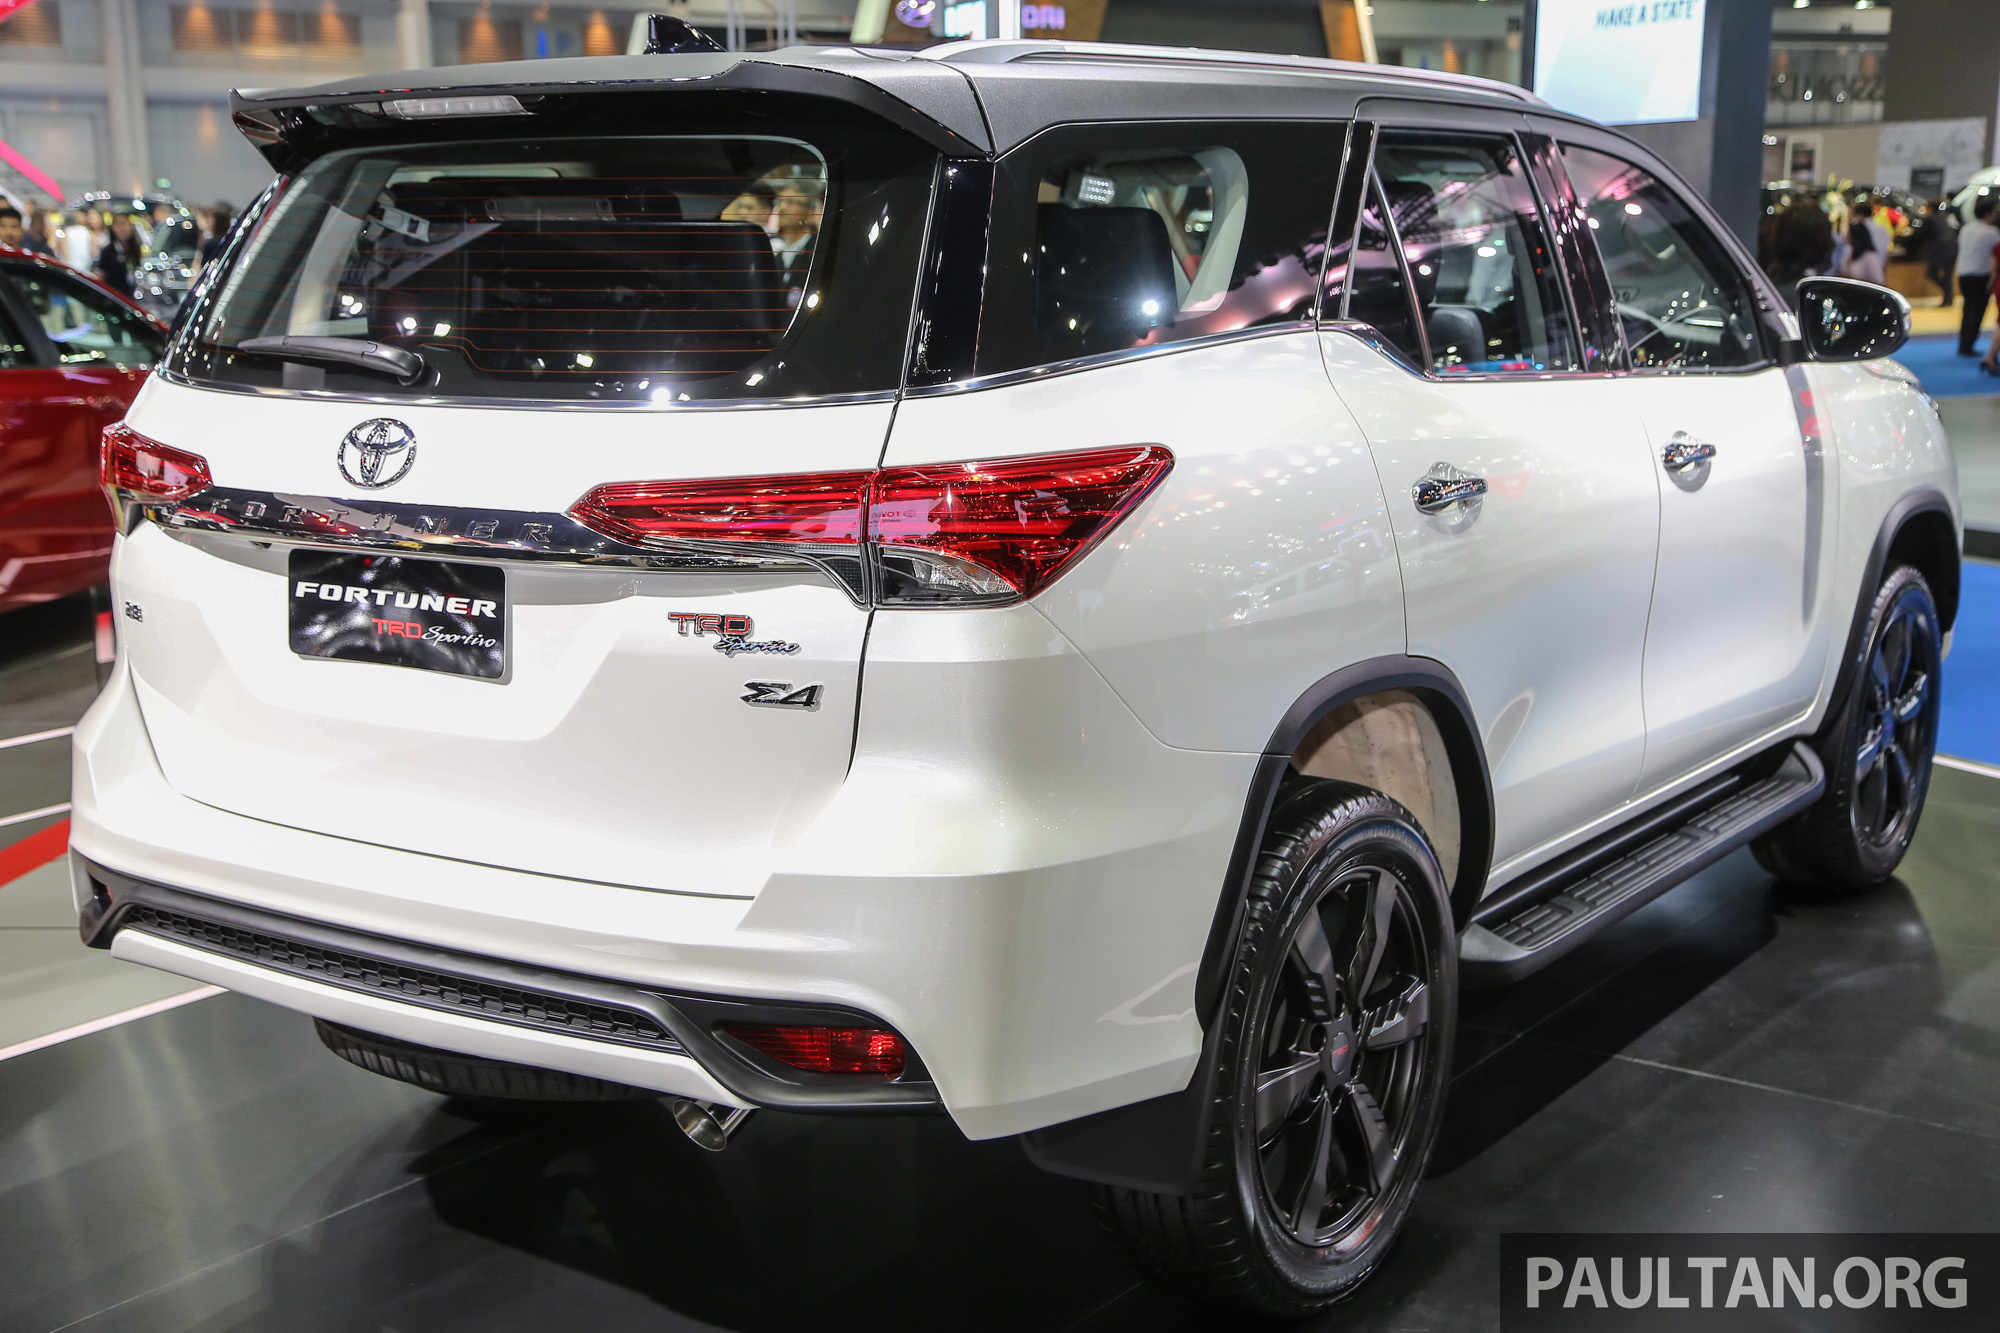 Gallery Toyota Fortuner Trd Sportivo At Bims 2016 Image